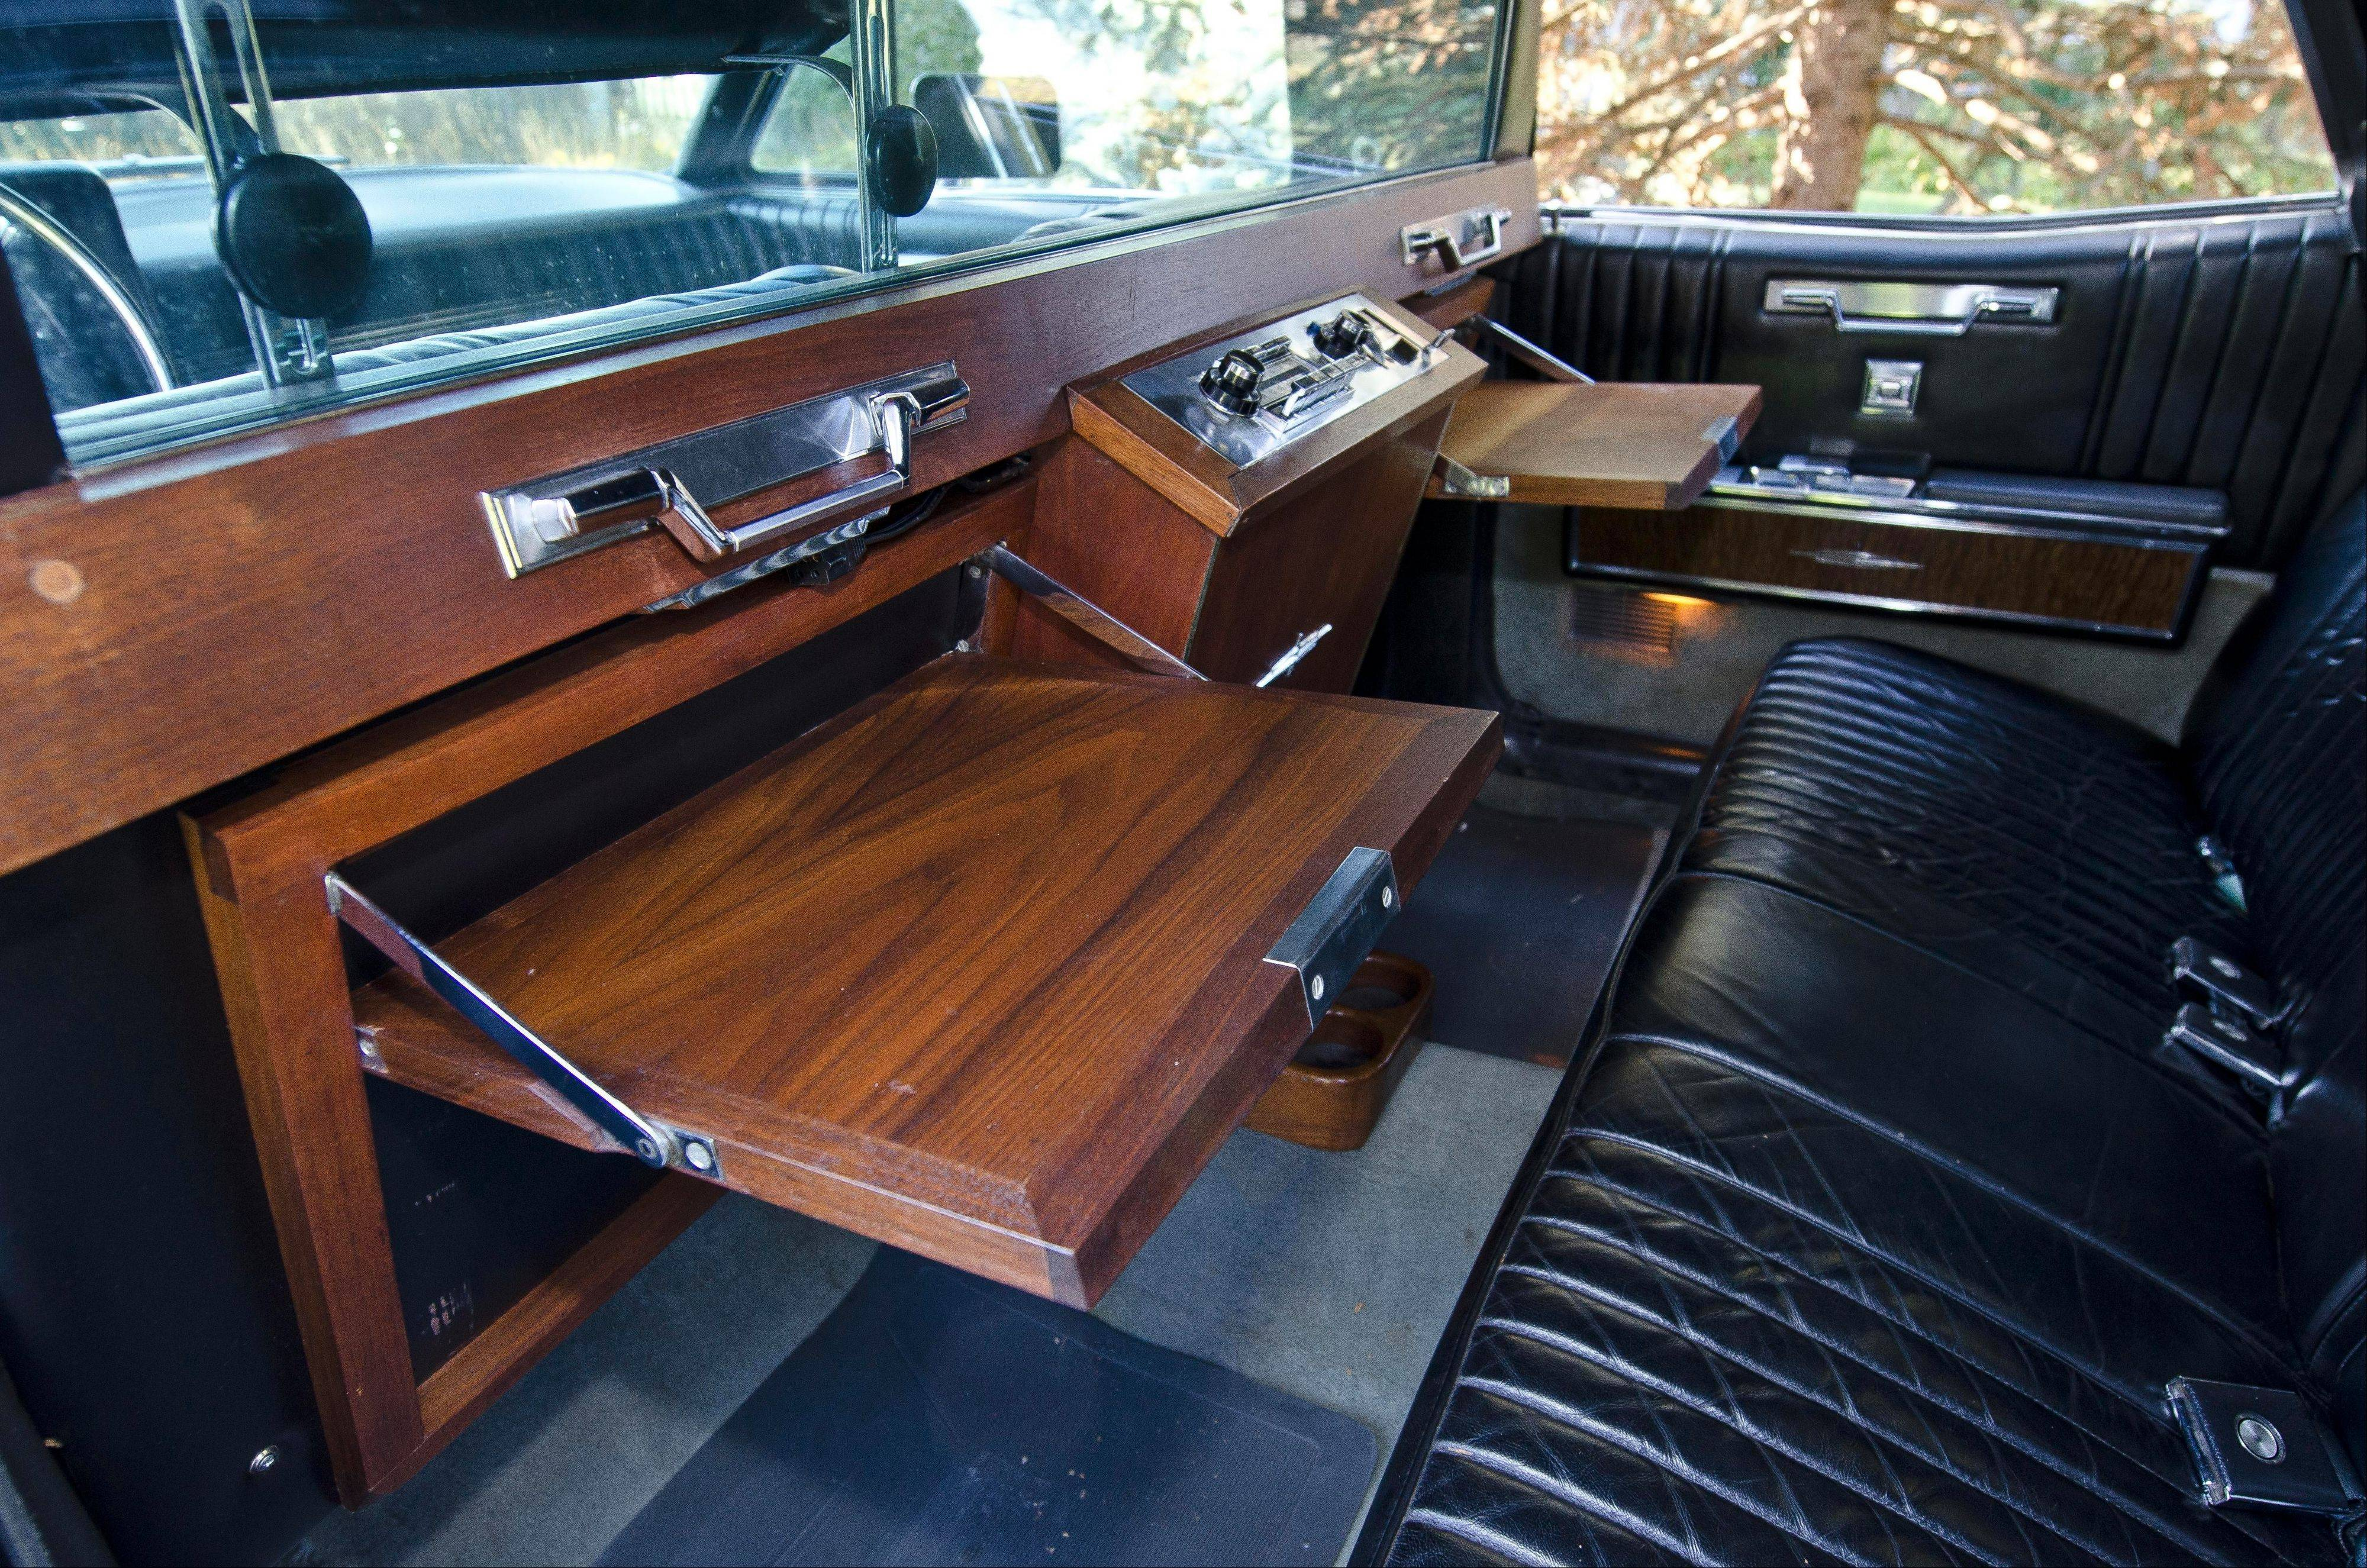 While a variety of luxuries came standard, buyers could purchase upgrades to their limousine interiors. Searle's Lincoln came with work stations.